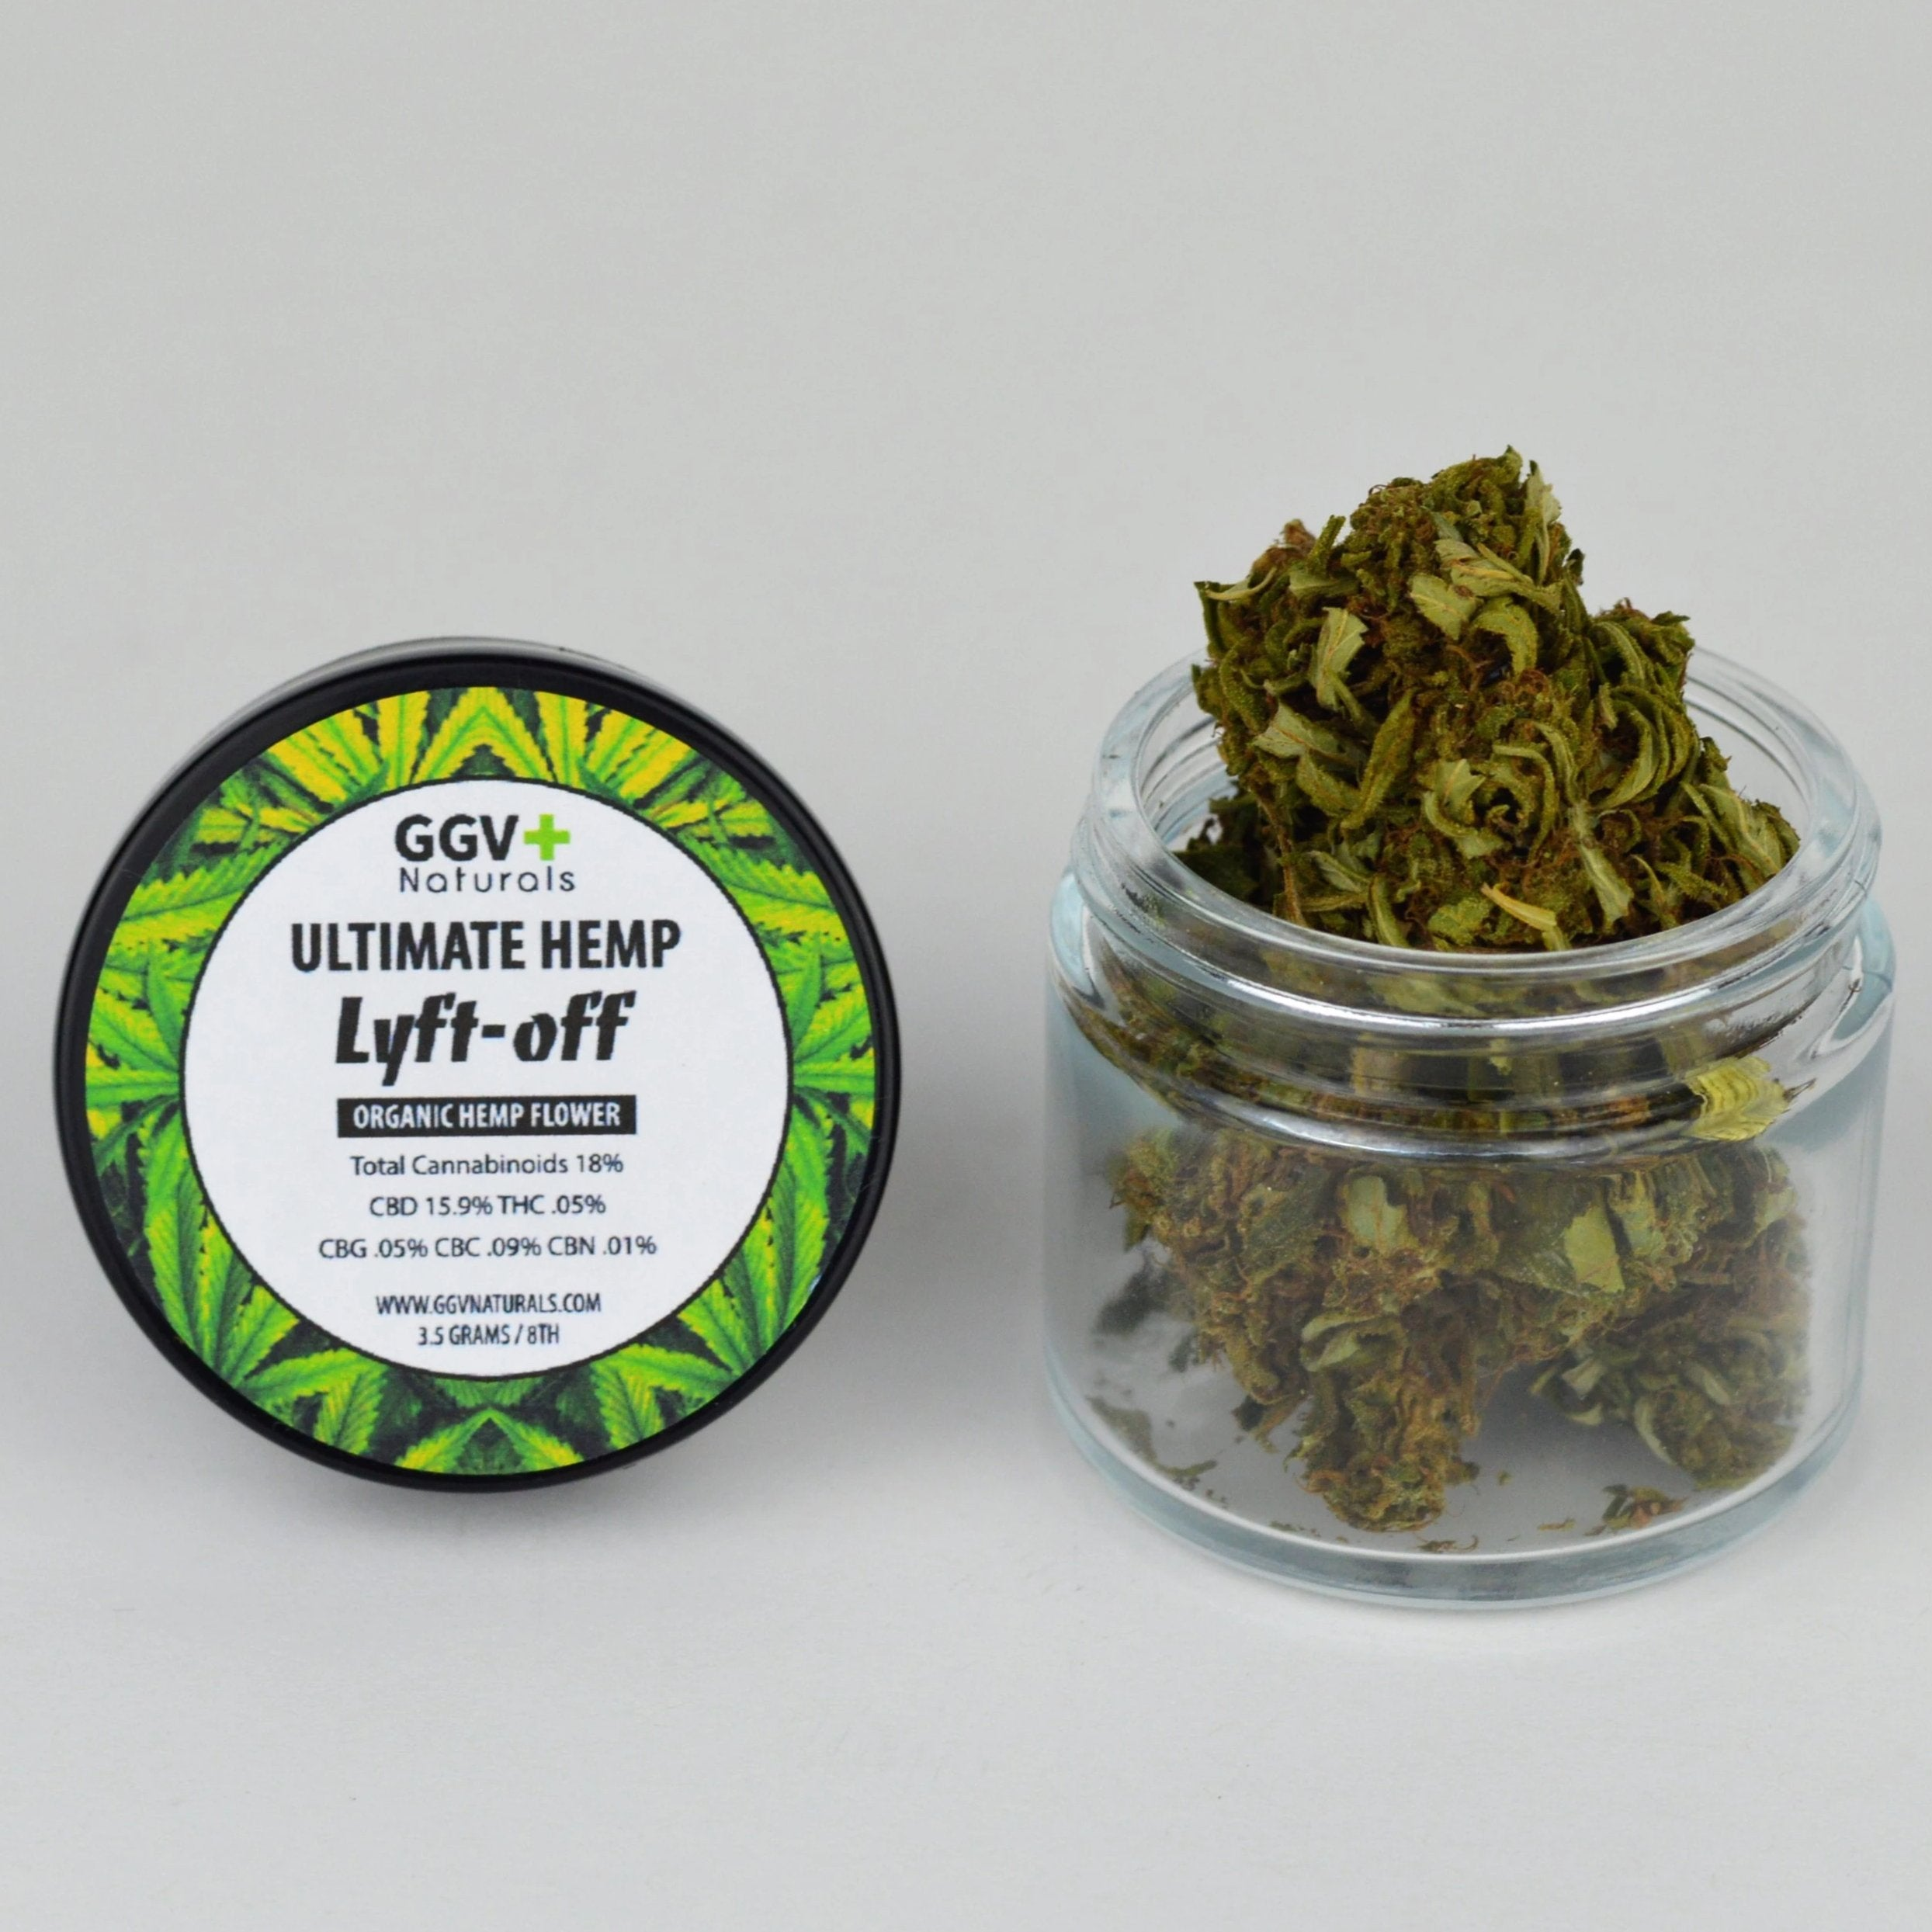 Ultimate Hemp Lyft-Off Organic Hemp Flower 3.5g - GGVNaturals